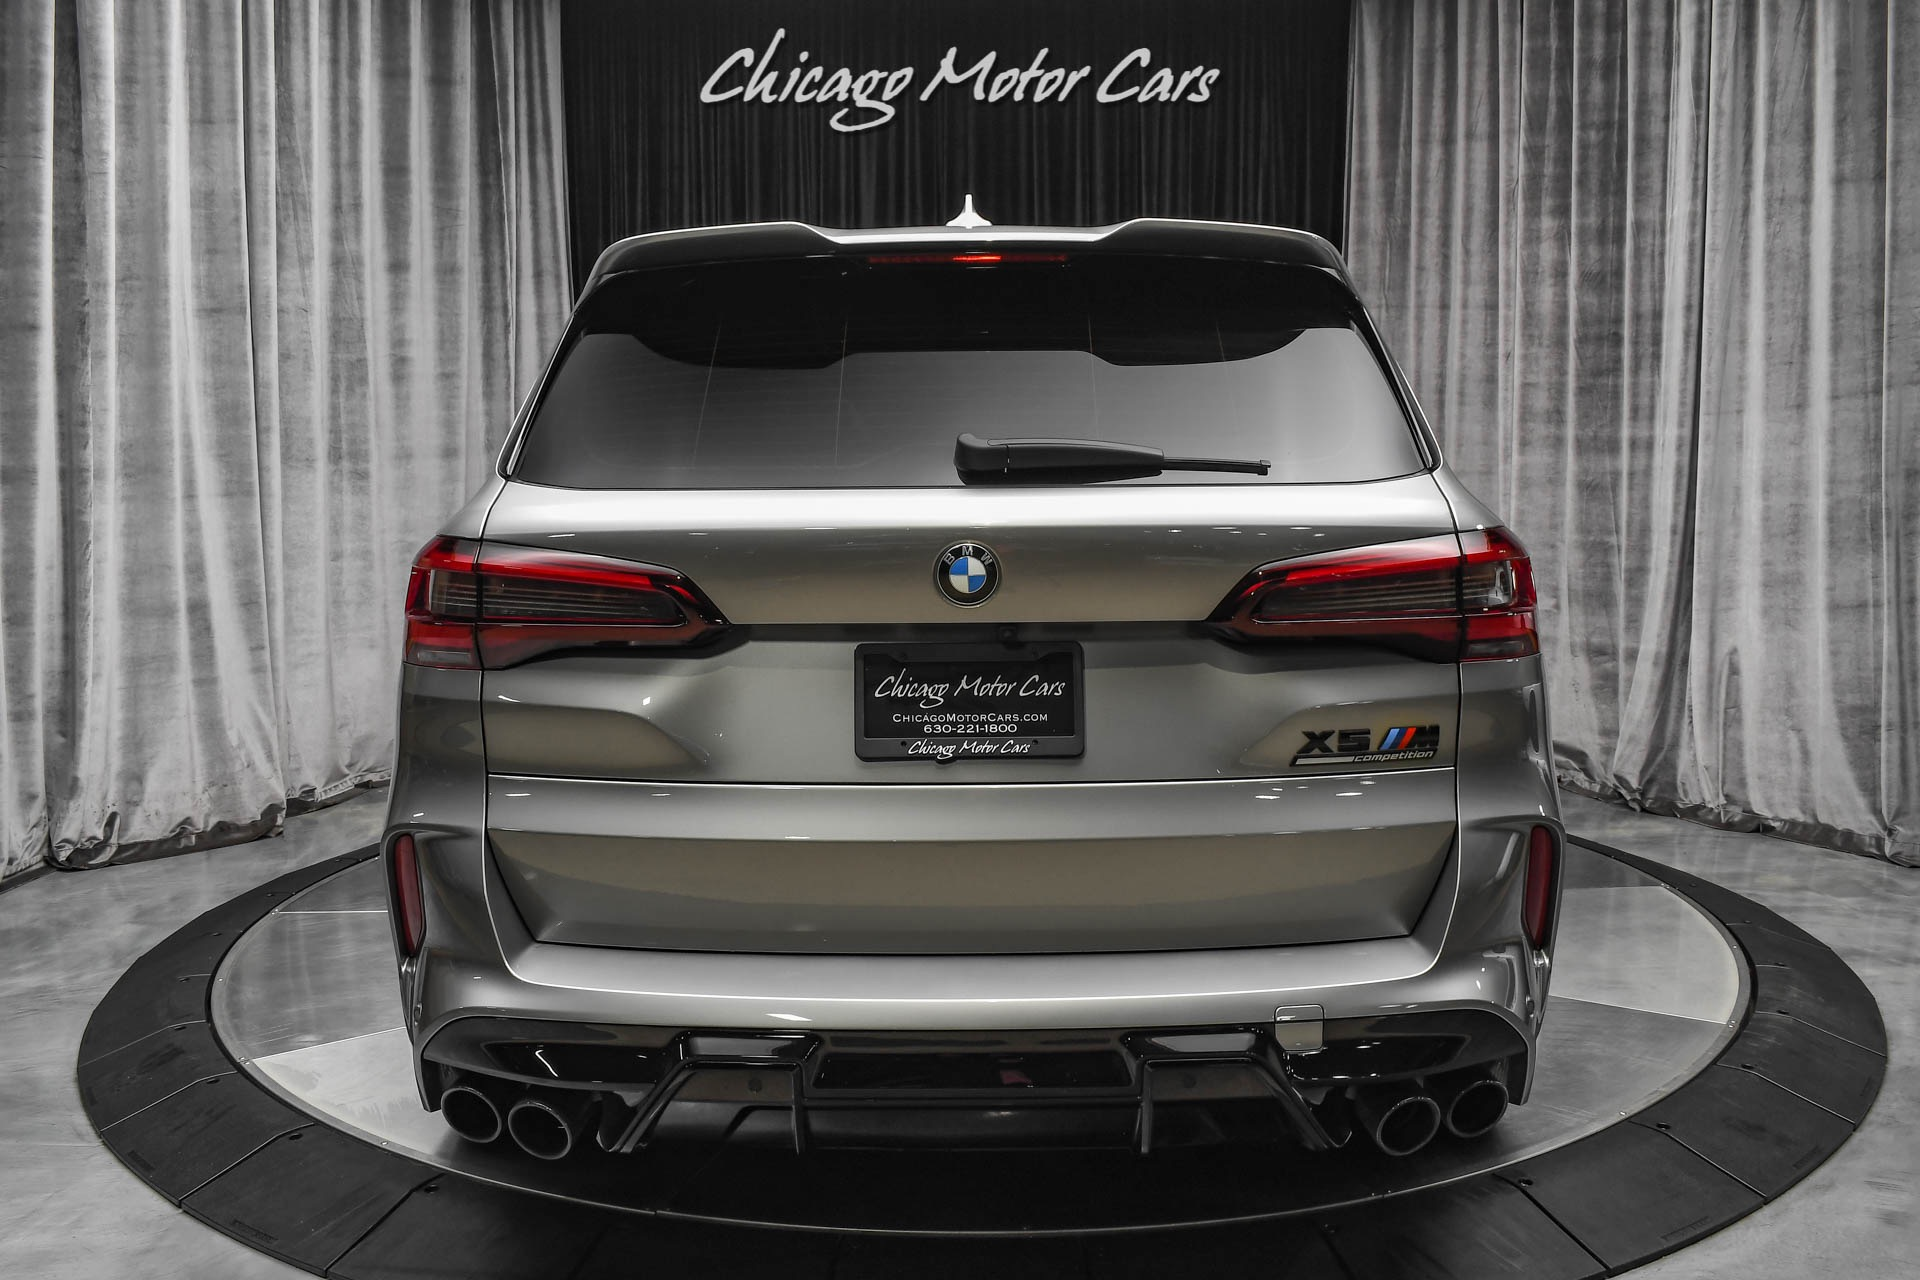 Used-2021-BMW-X5-M-Competition-Package-Executive-Package-Full-Paint-Protection-Film